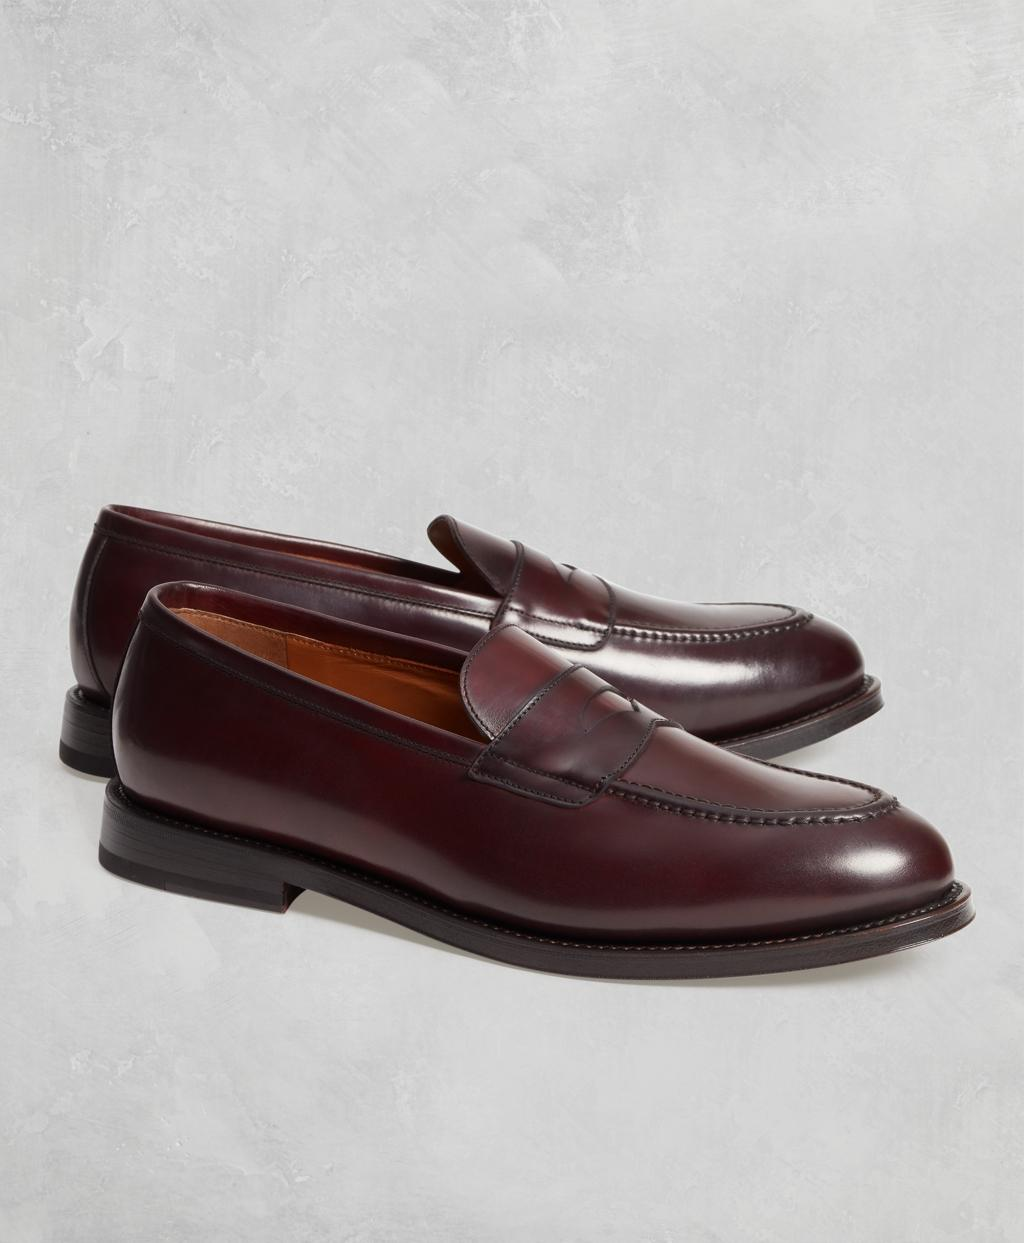 c99debcc5ad Lyst - Brooks Brothers Golden Fleece Cordovan Penny Loafers for Men